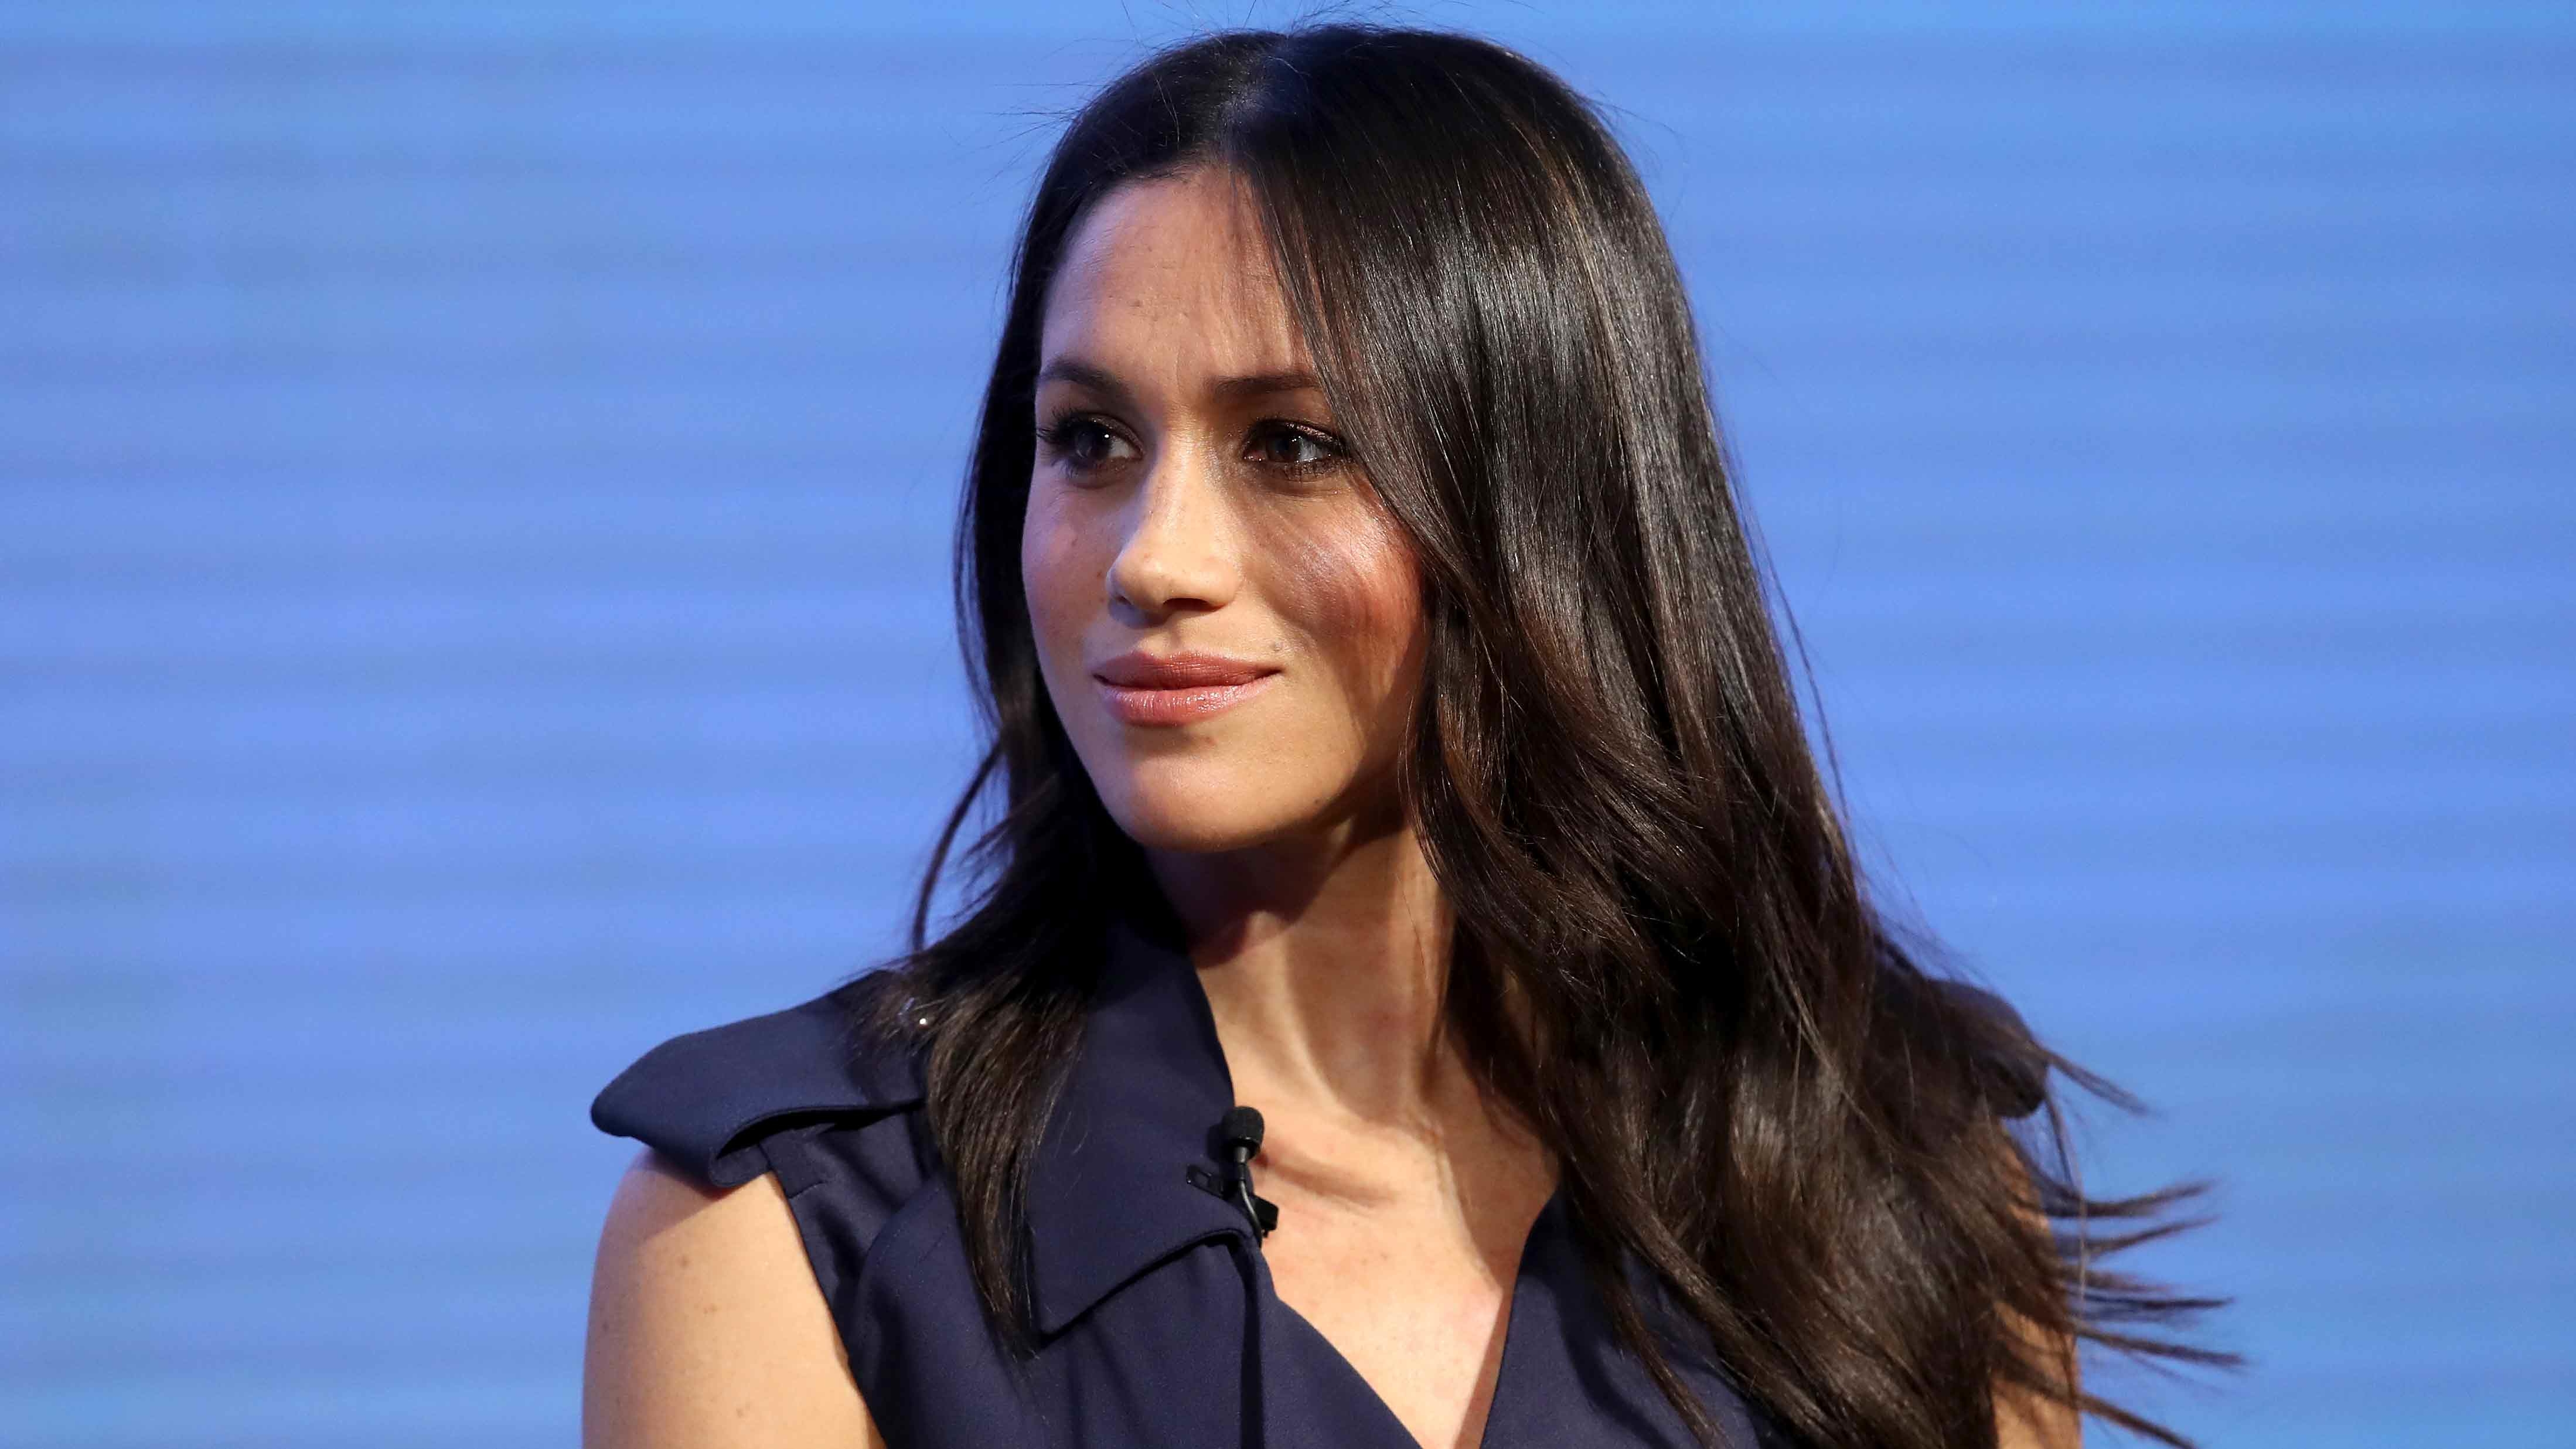 Meghan Markle To Be Made Into A Madame Tussauds Waxwork